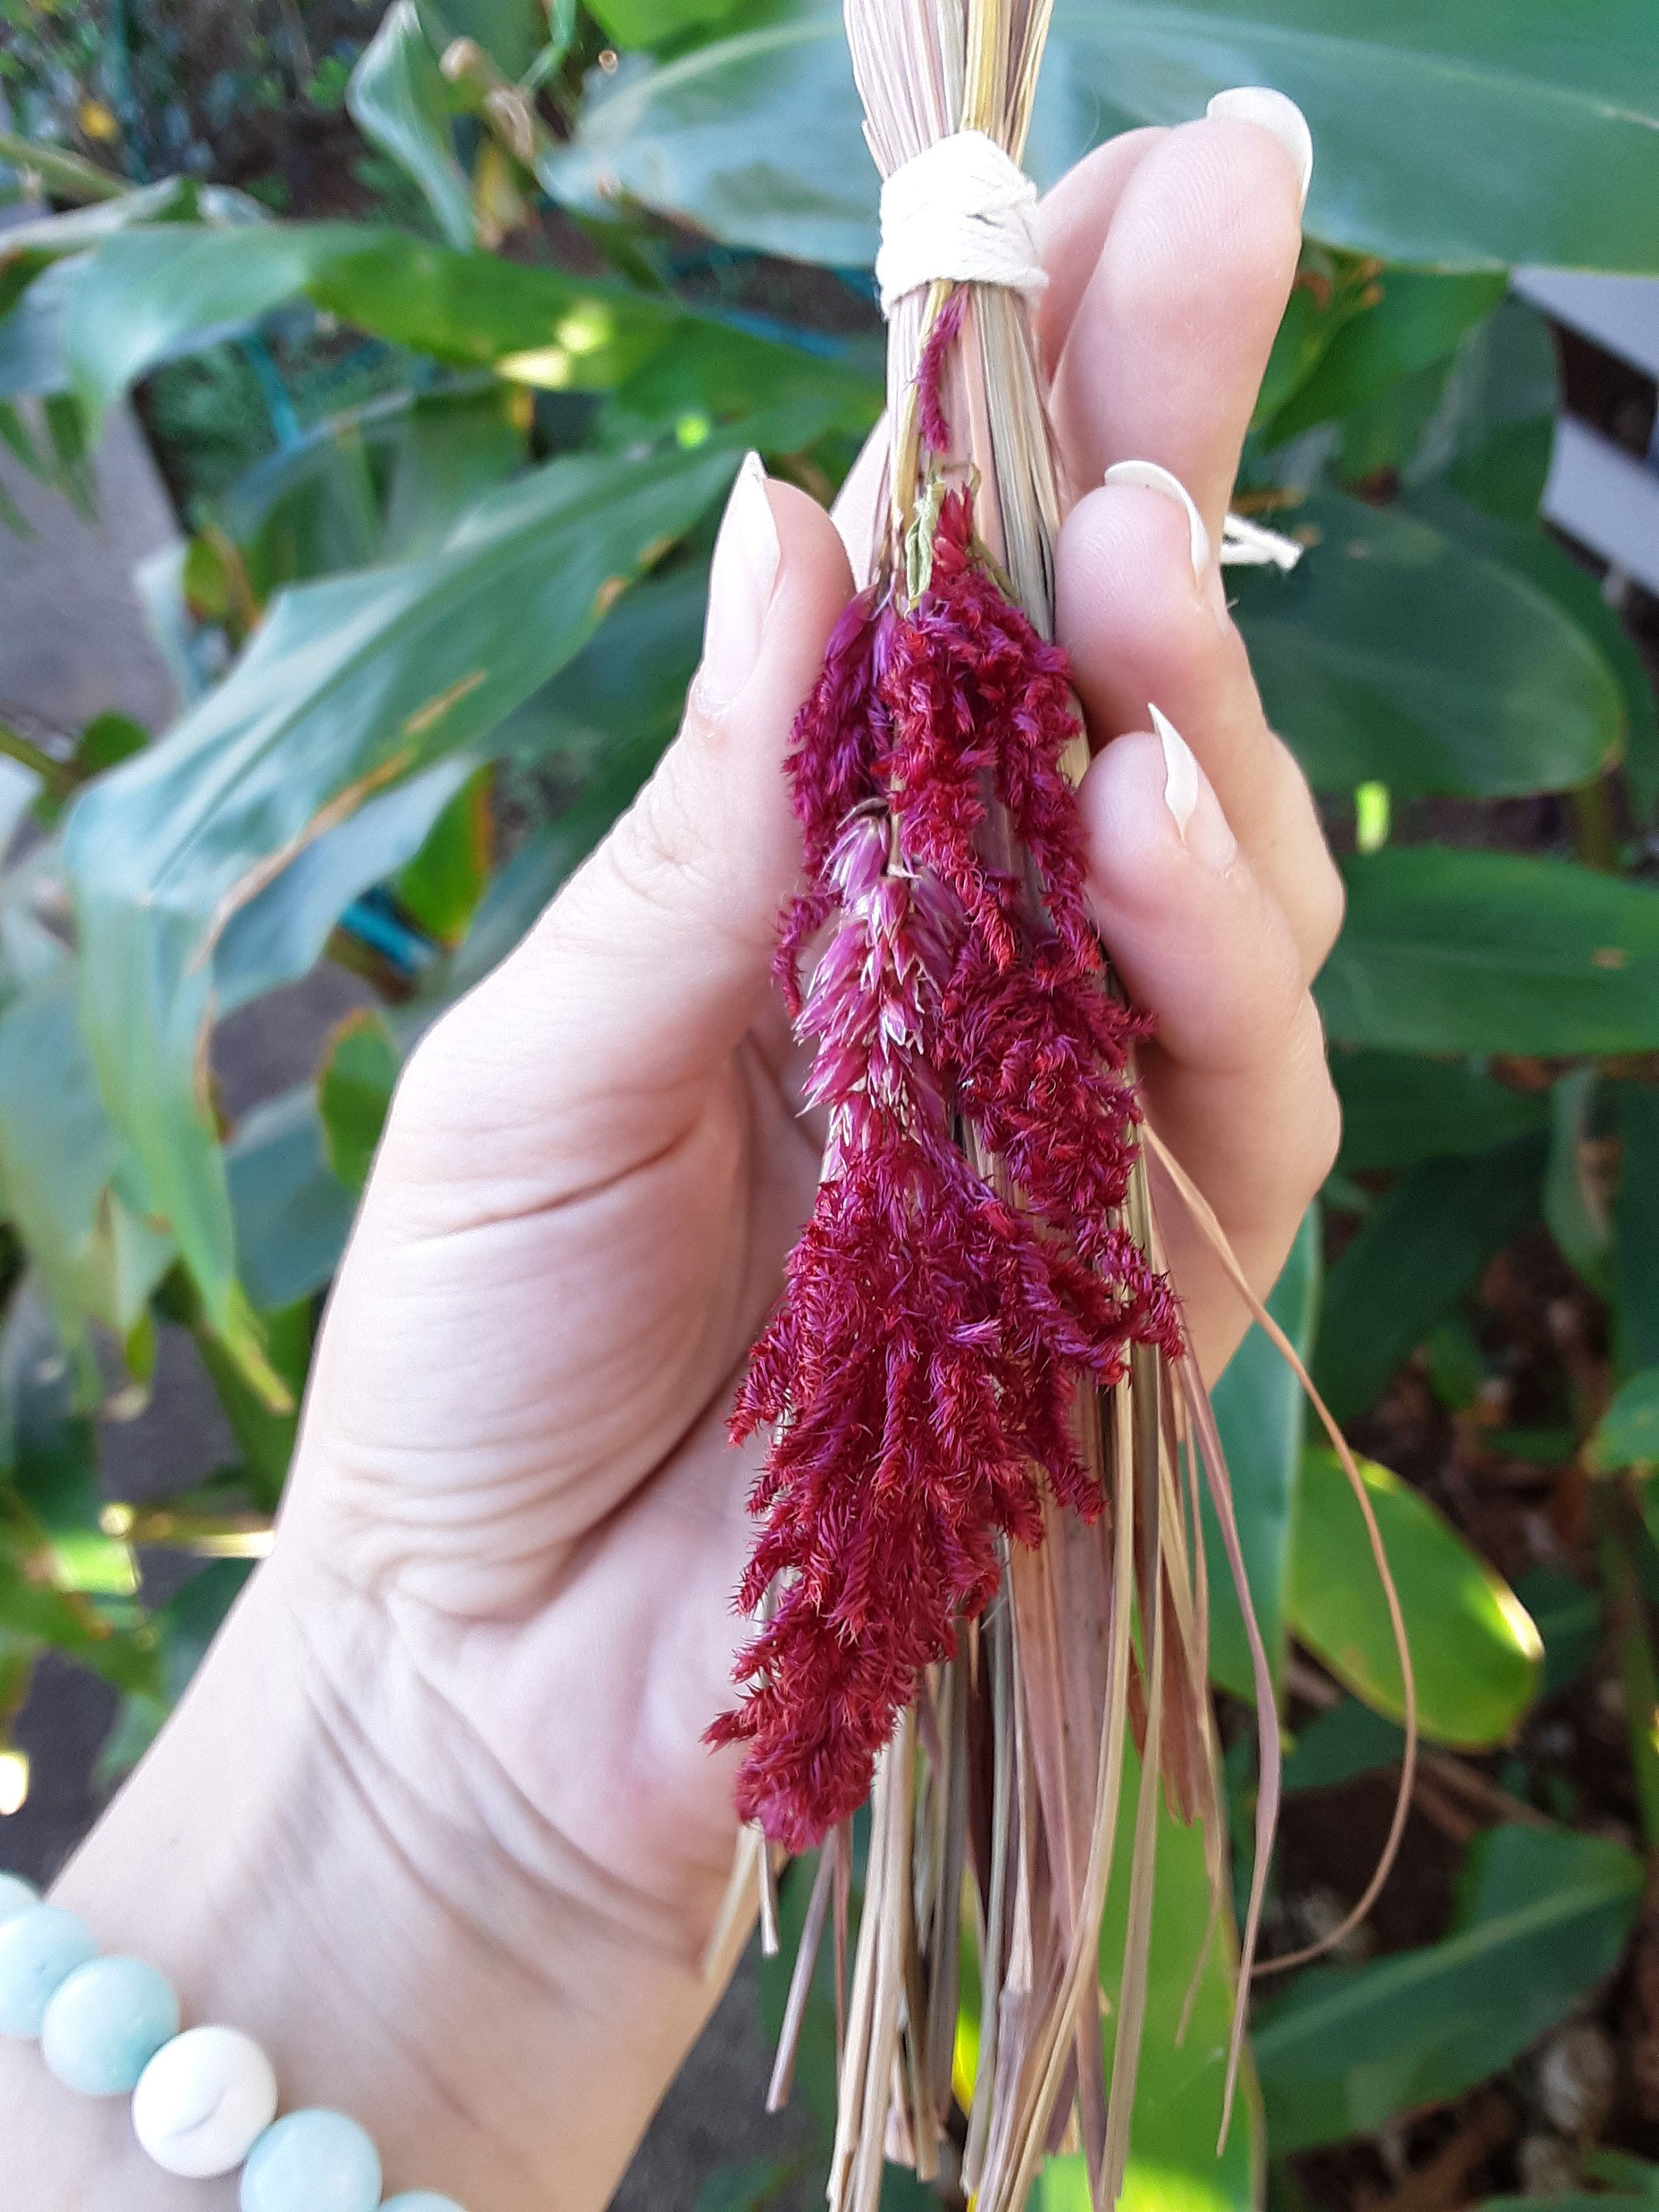 Besom Lemongrass Witch Broom Broom Witch Besom Altar Items Altar Tools Basil Dried Flower Dried Herbs Handcraf Drying Herbs Dried Flowers Witch Broom